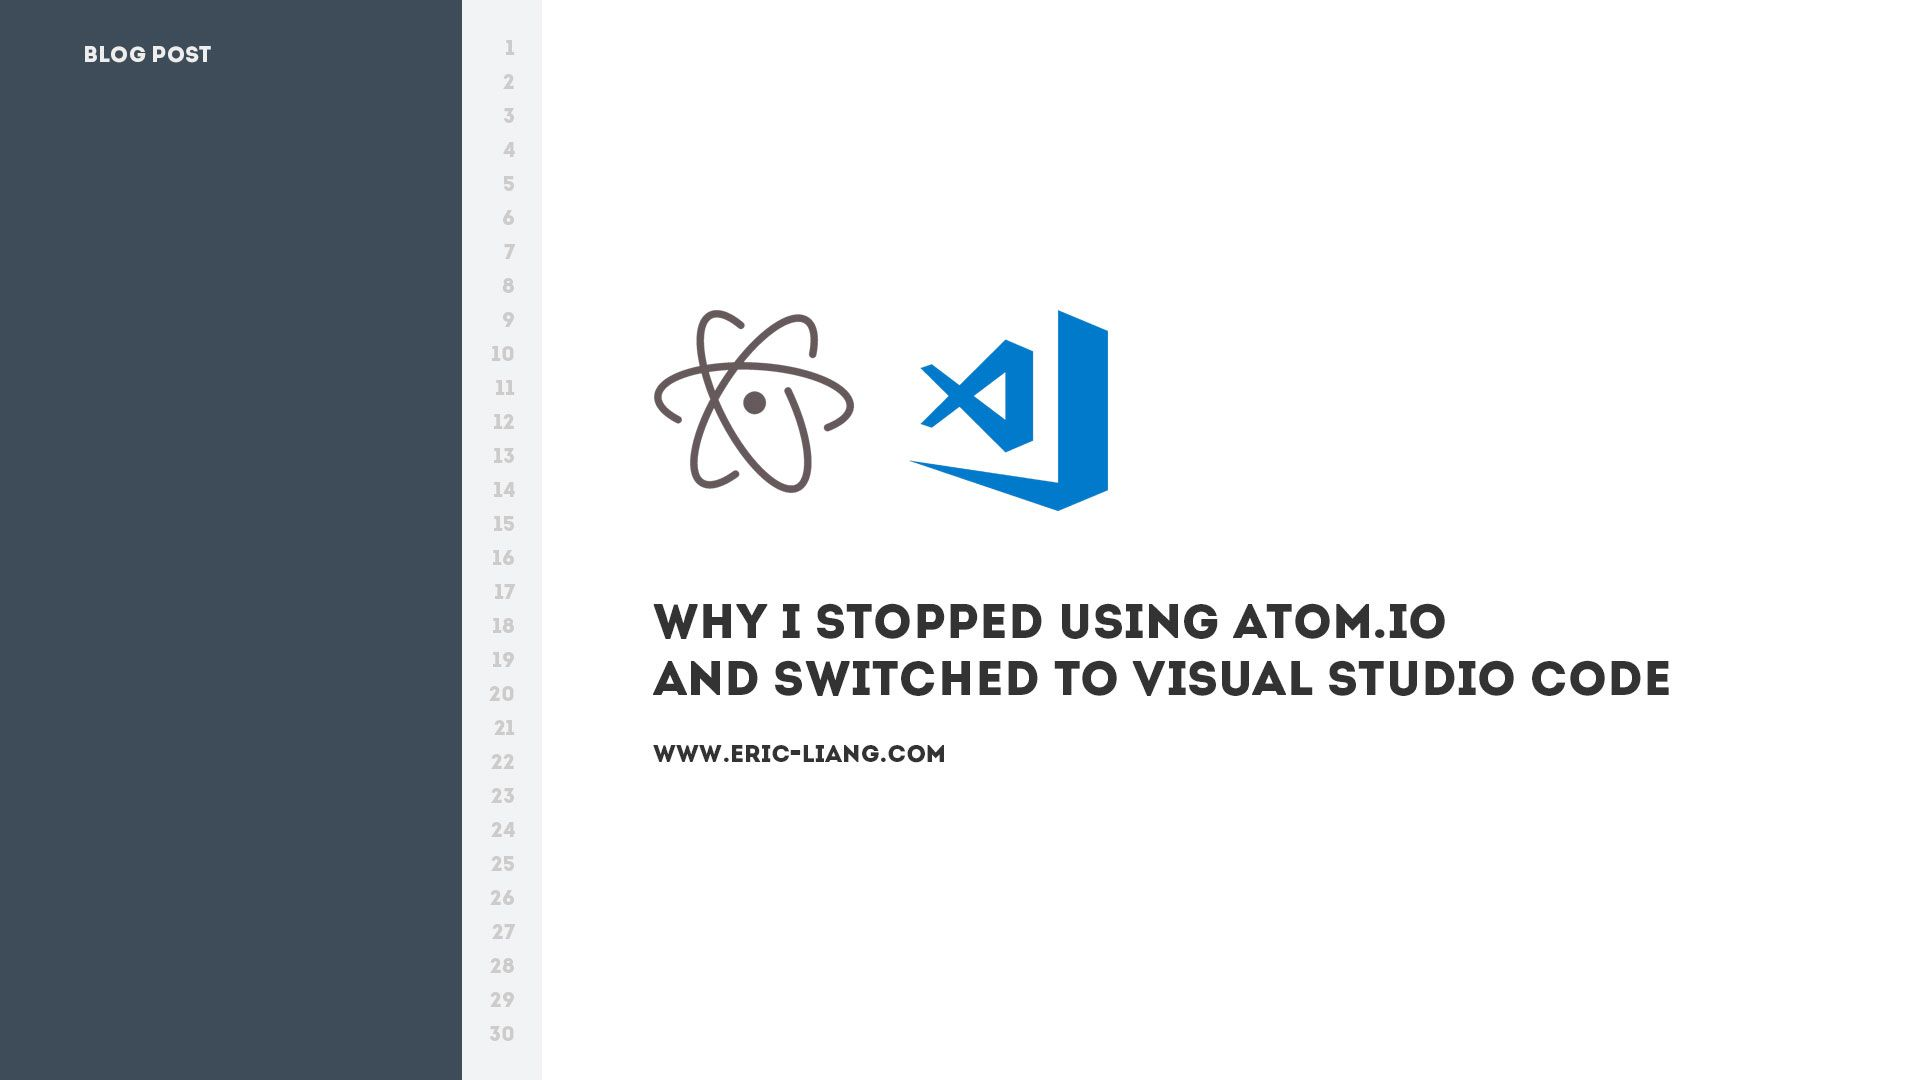 Why I Stopped Using Atom.io And Switched To Visual Studio Code